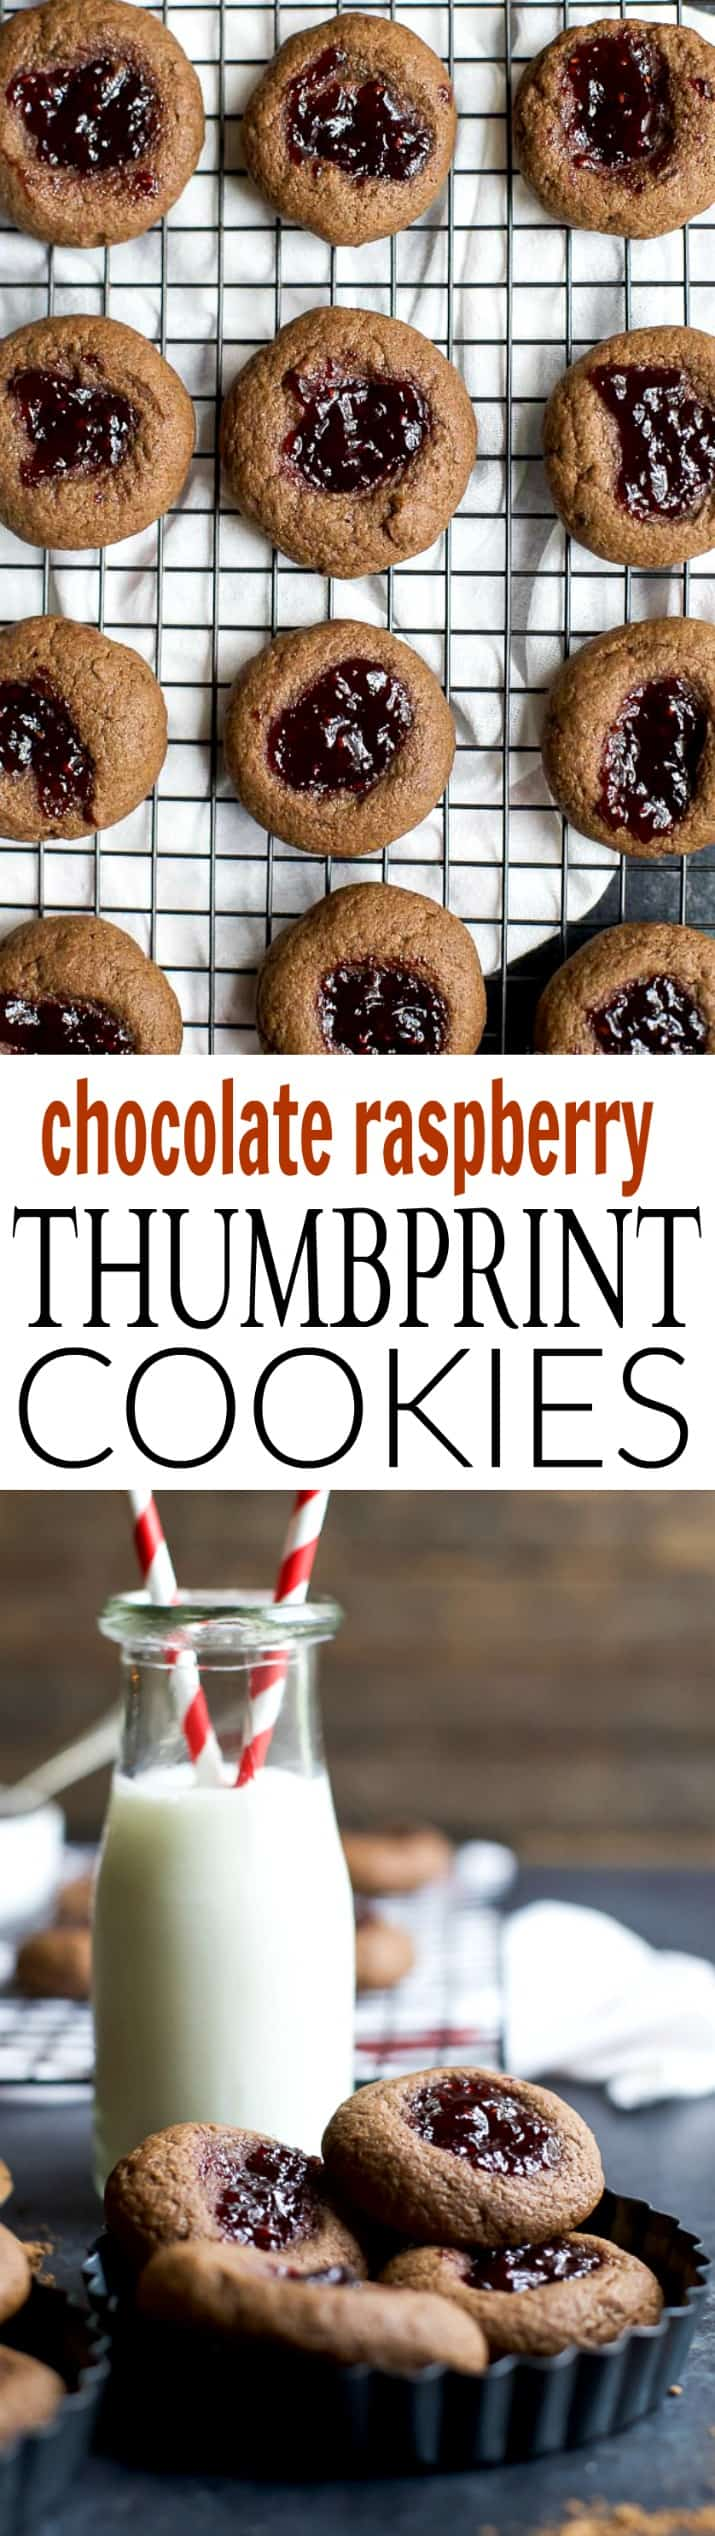 These CHOCOLATE RASPBERRY THUMBPRINT COOKIES have a subtle chocolate flavor with a burst of raspberry that you'll fall in love with!